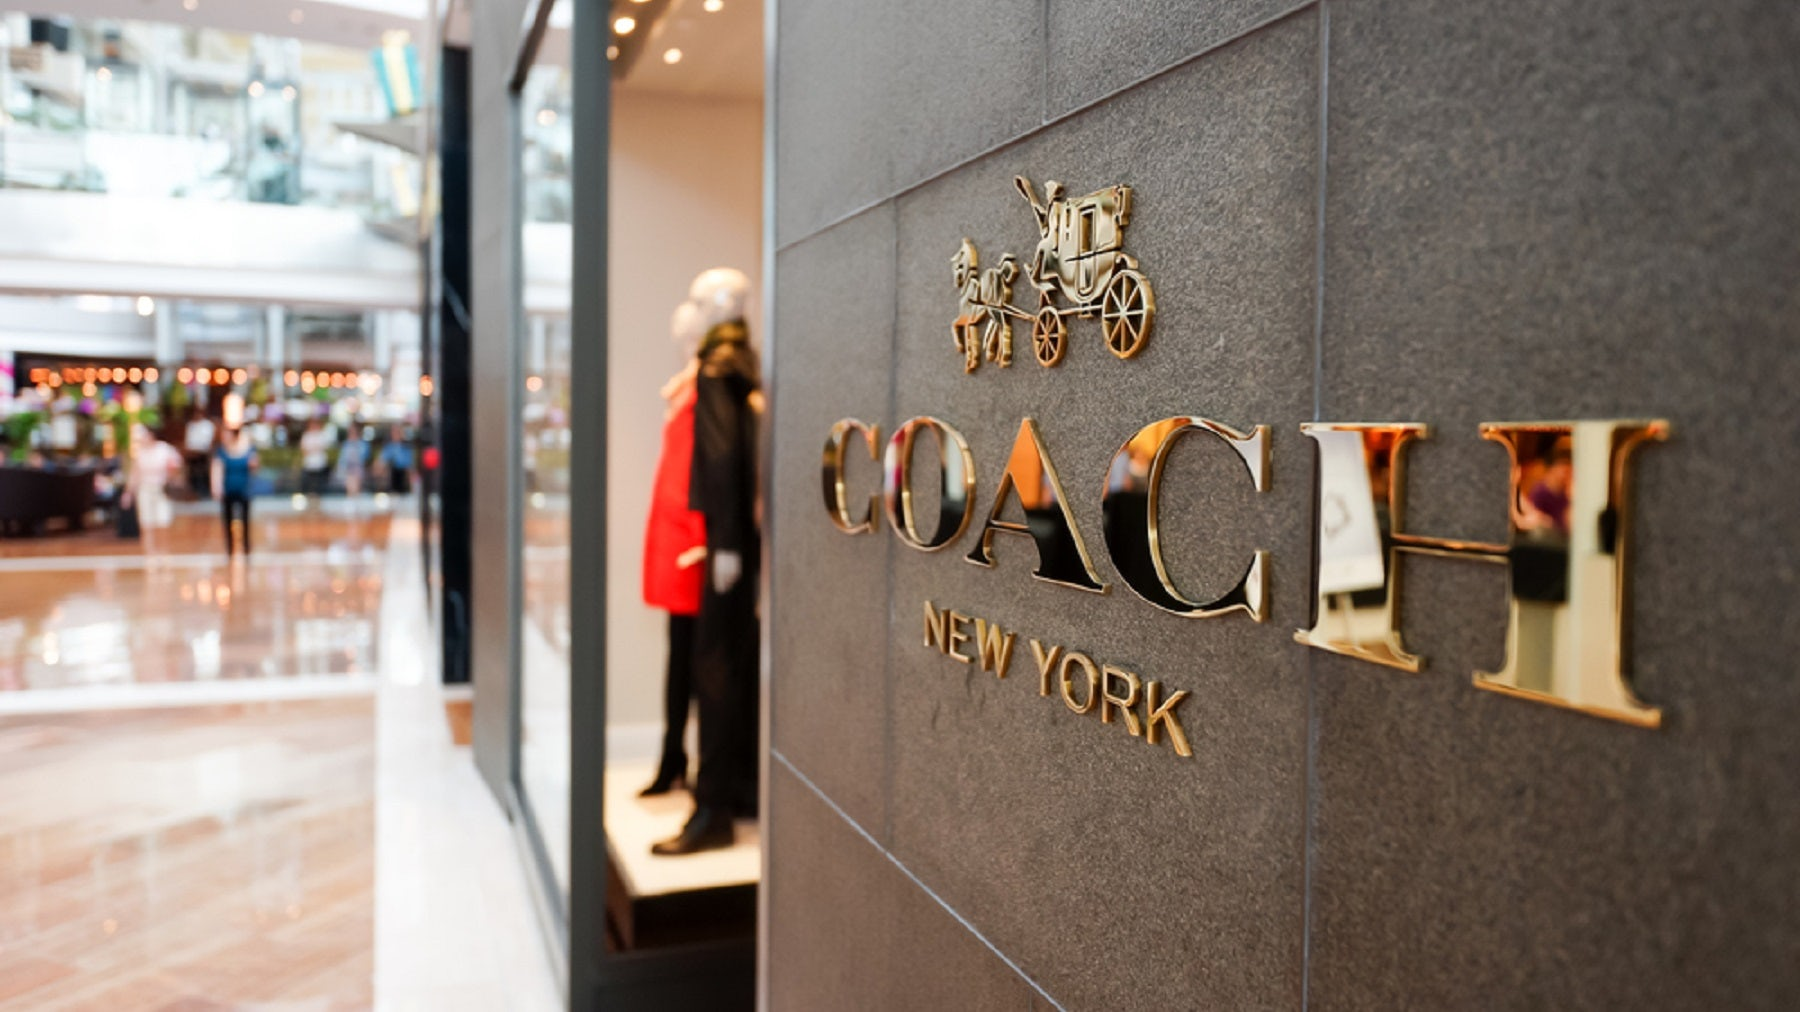 Coach Owner Applies to Withdraw Shares from Hong Kong